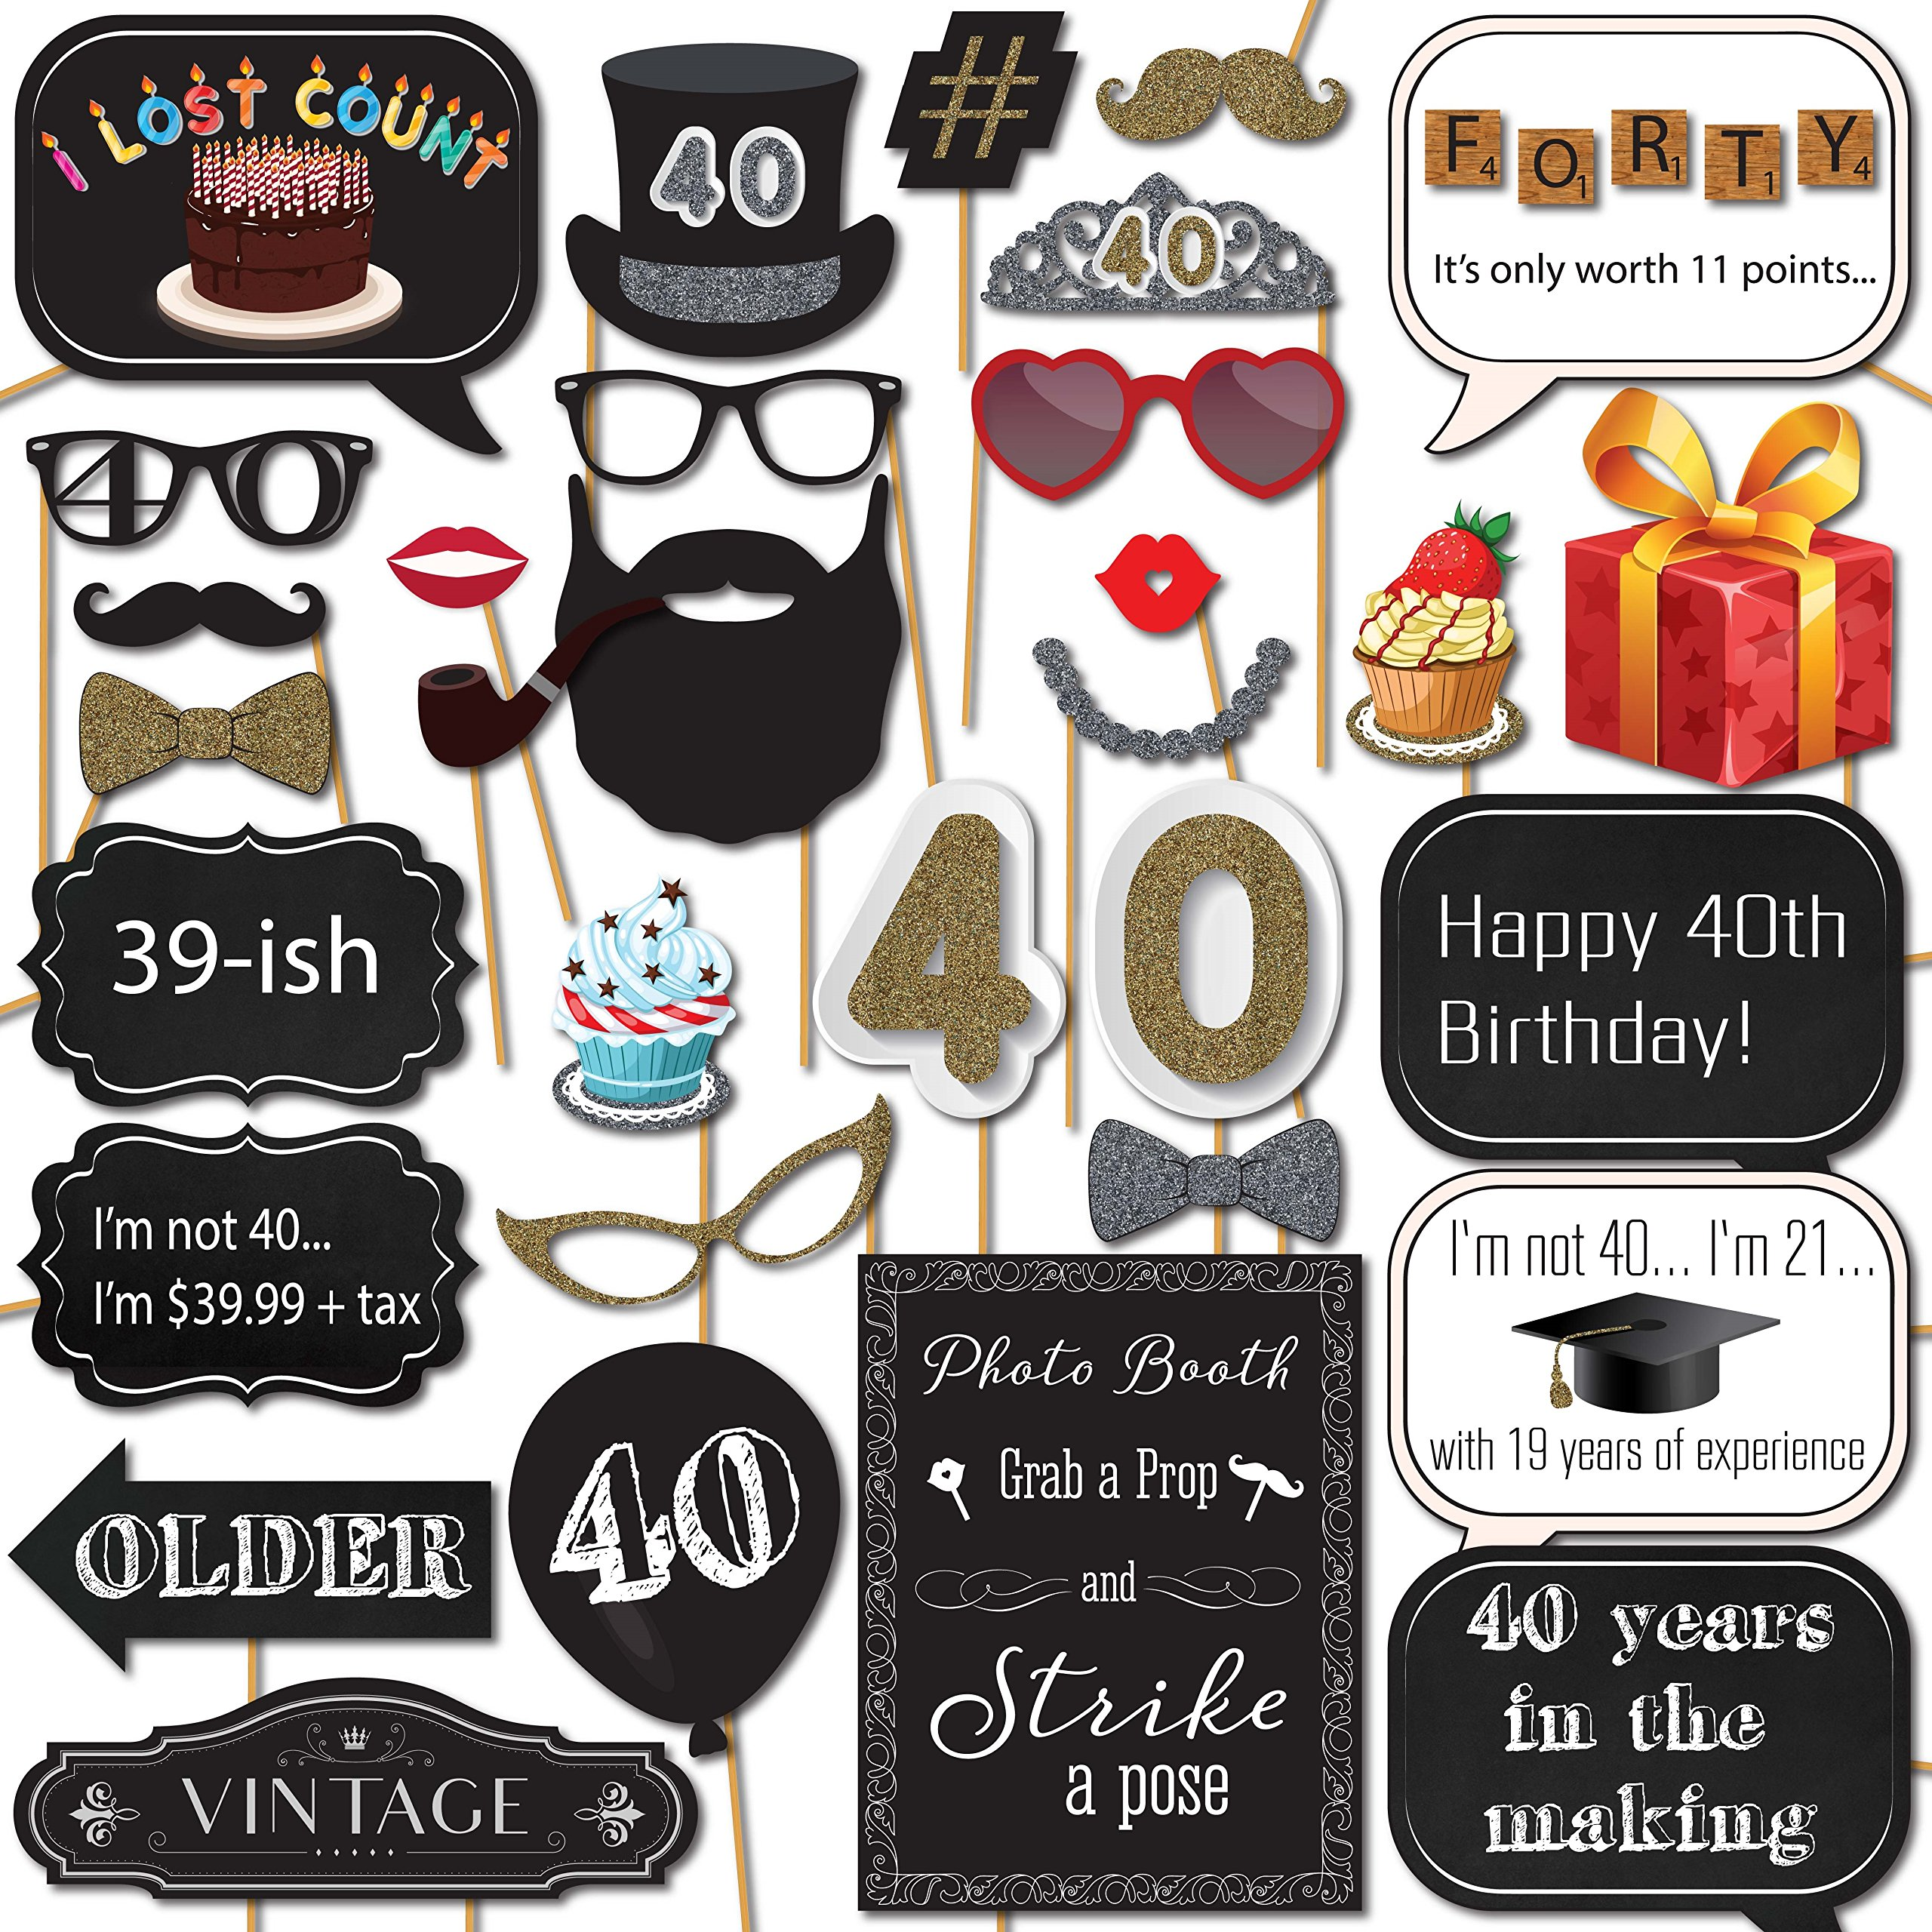 40th Birthday Photo Booth Props with Strike a Pose Sign - 31 Printed Pieces with Wooden Sticks by Sunrise Party Supplies